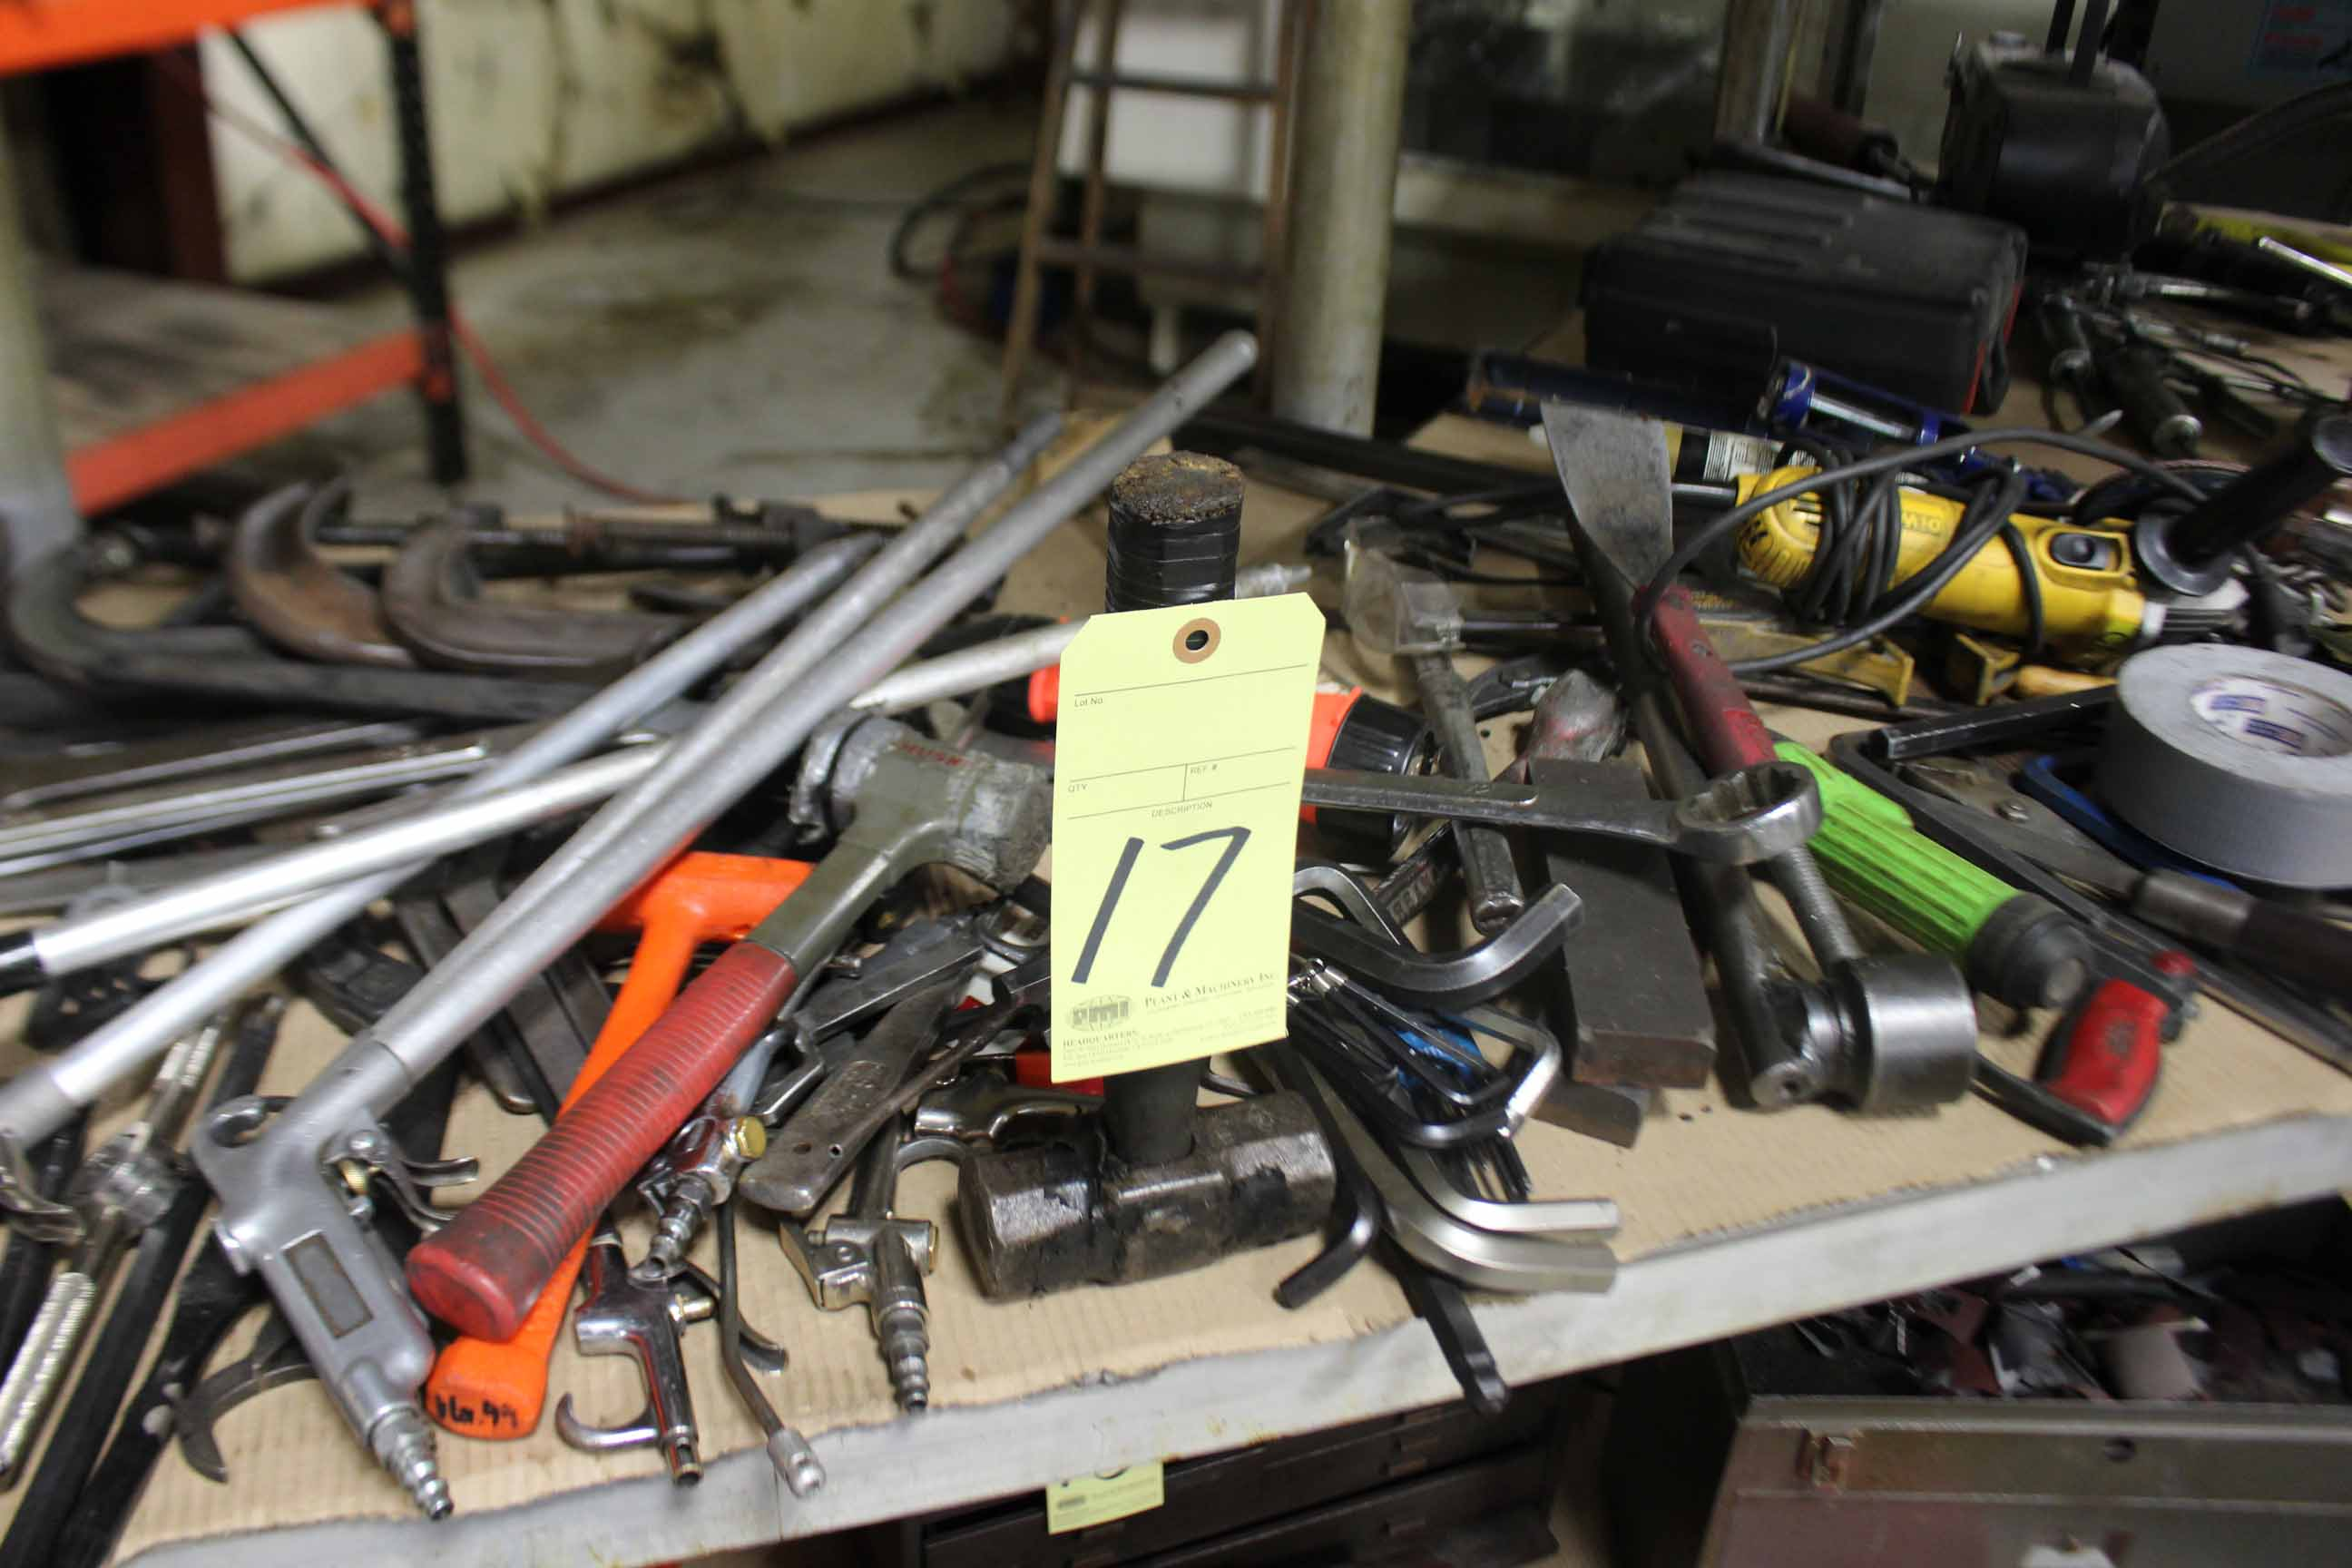 Lot 17 - LOT CONSISTING OF: hand tools, wrenches, pliers, hammers, etc., misc.